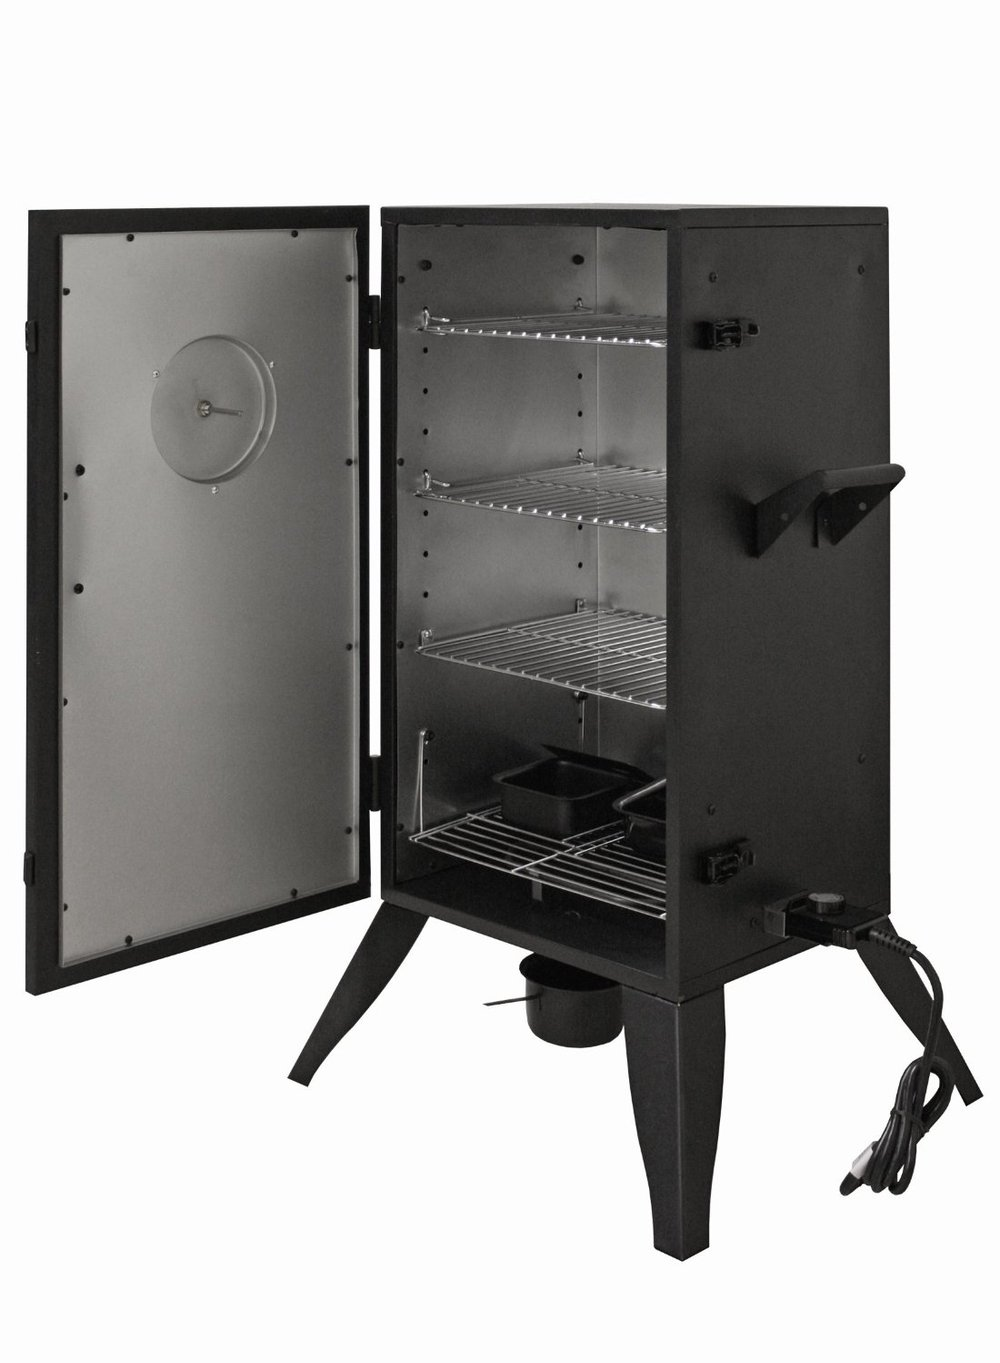 30 Quot Double Layers Electric Vertical Box Smoker Grills Fish